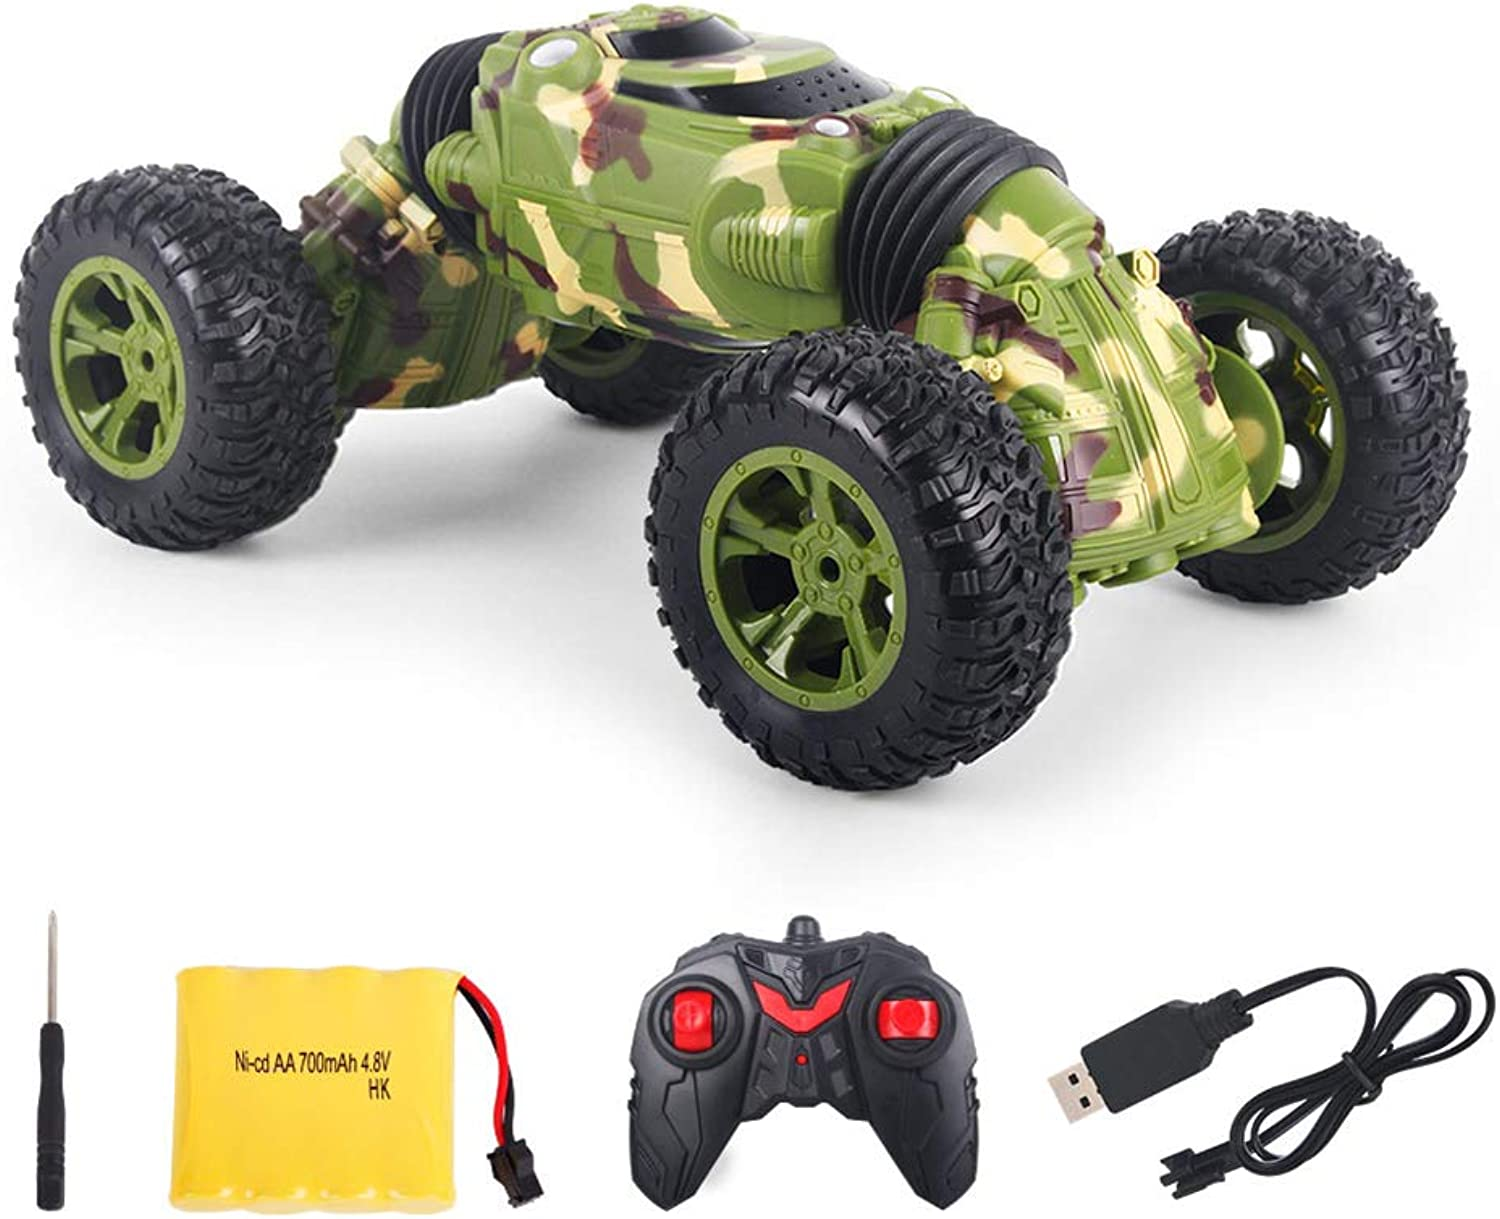 PinShang 1 16 2.4G USB Rechargeable Deformation RC Climbing Car Kids Toy Green 1 16